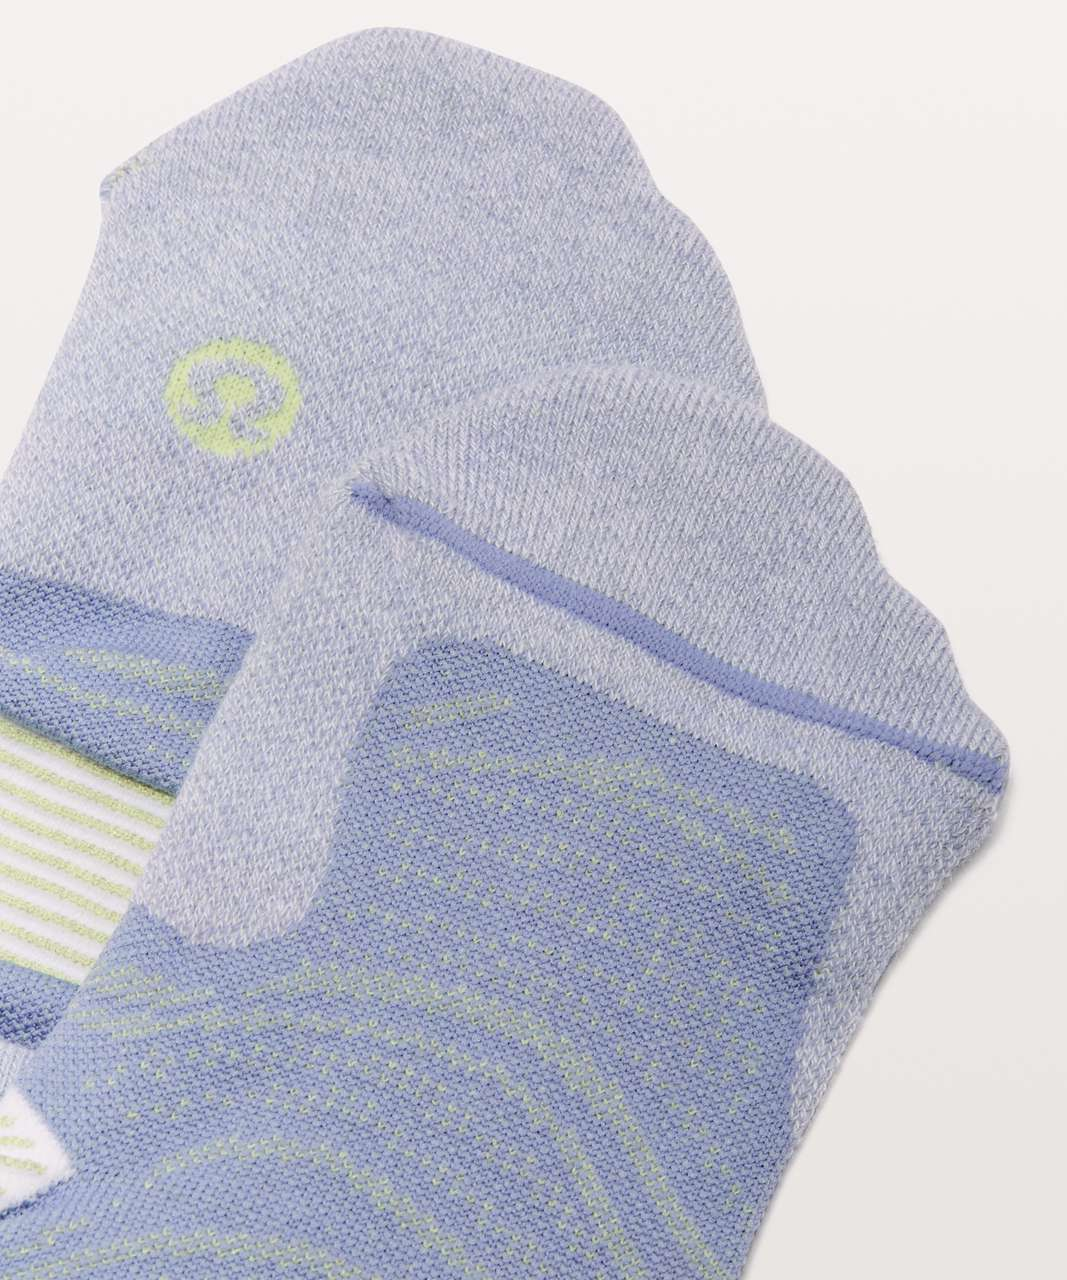 Lululemon Speed Sock *Silver - Iron Purple / Florid Flash